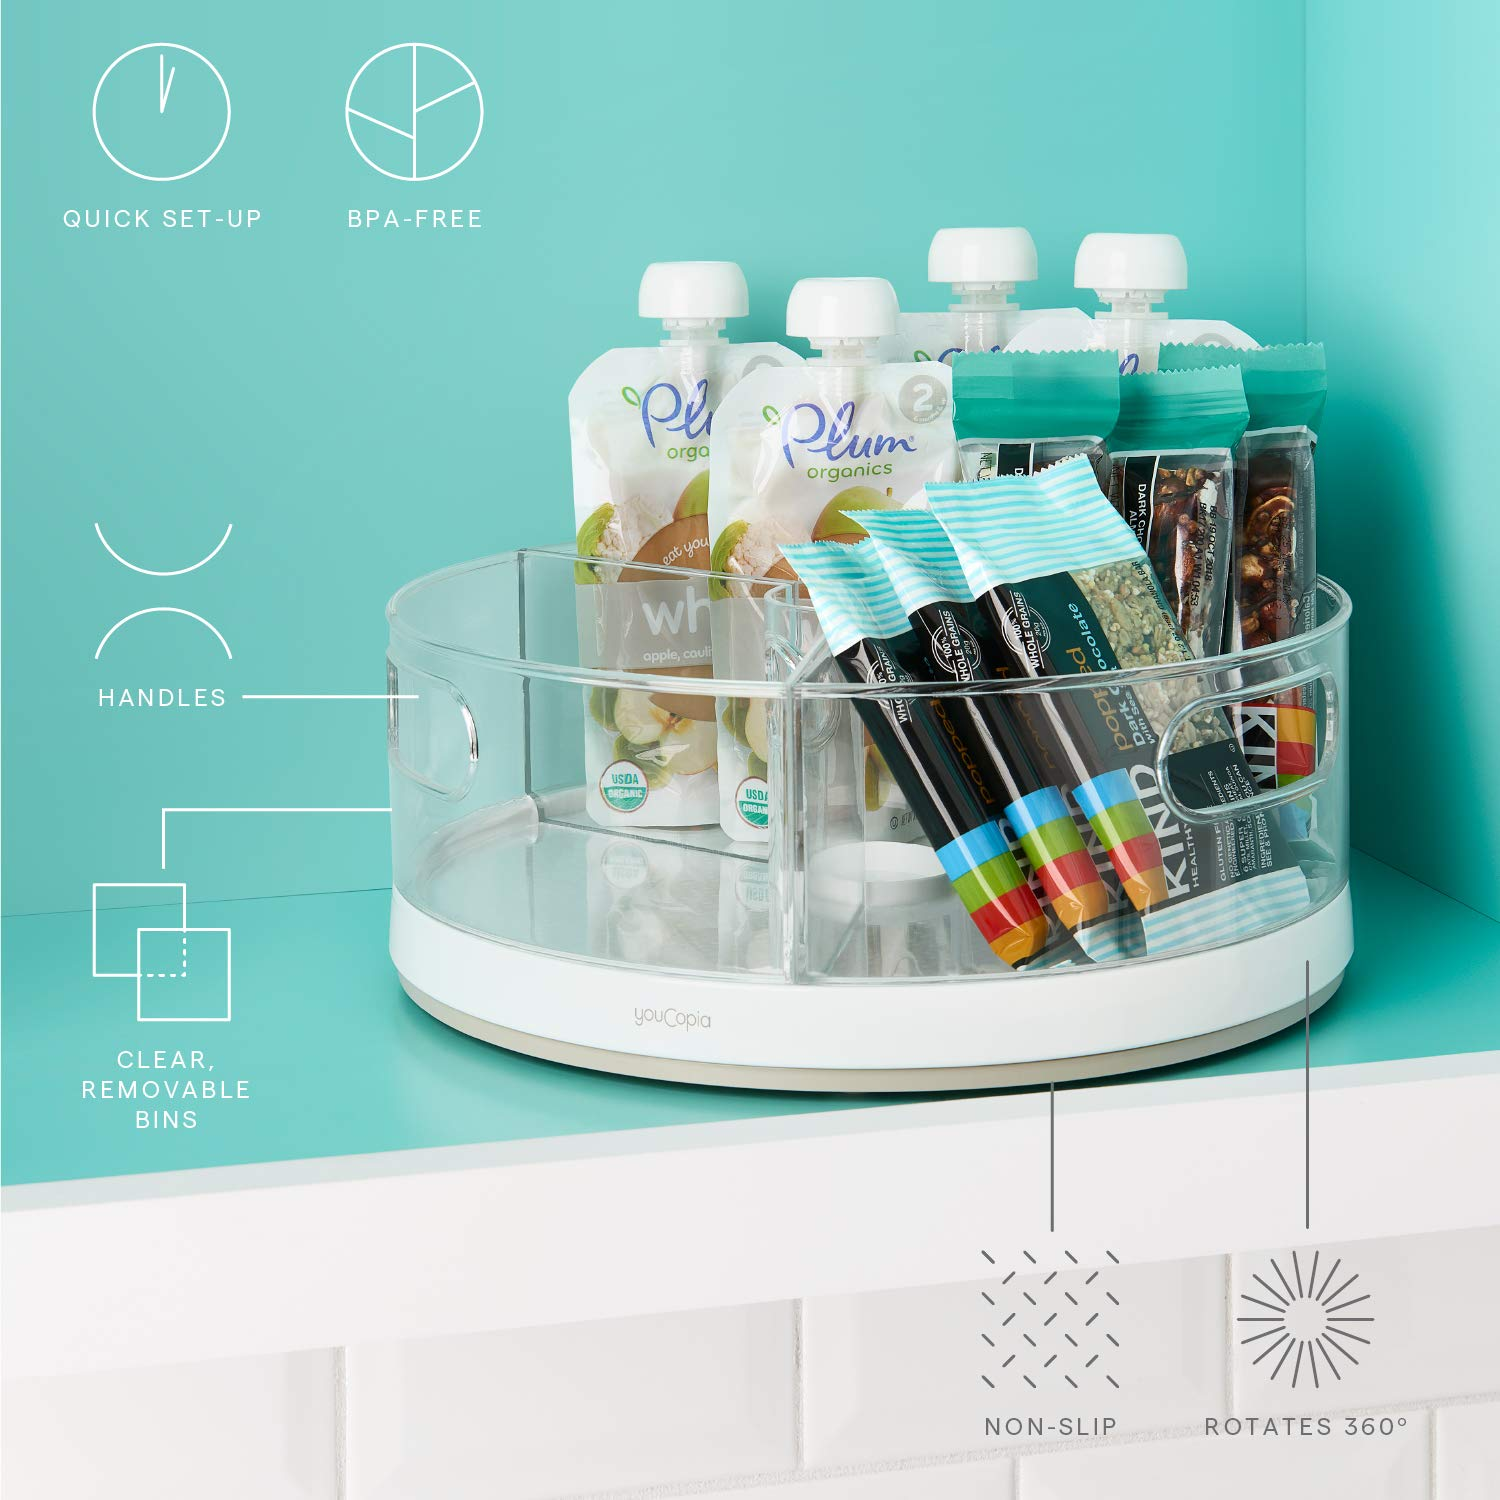 11 Things to Help You Maximize Your Kitchen Cabinet Storage YouCopia Crazy Susan Turntable Organizer #Organize #Organization #OrganizedKitchen #Kitchen #KitchenCabinets #KitchenStorage #CabinetStorage #Storage